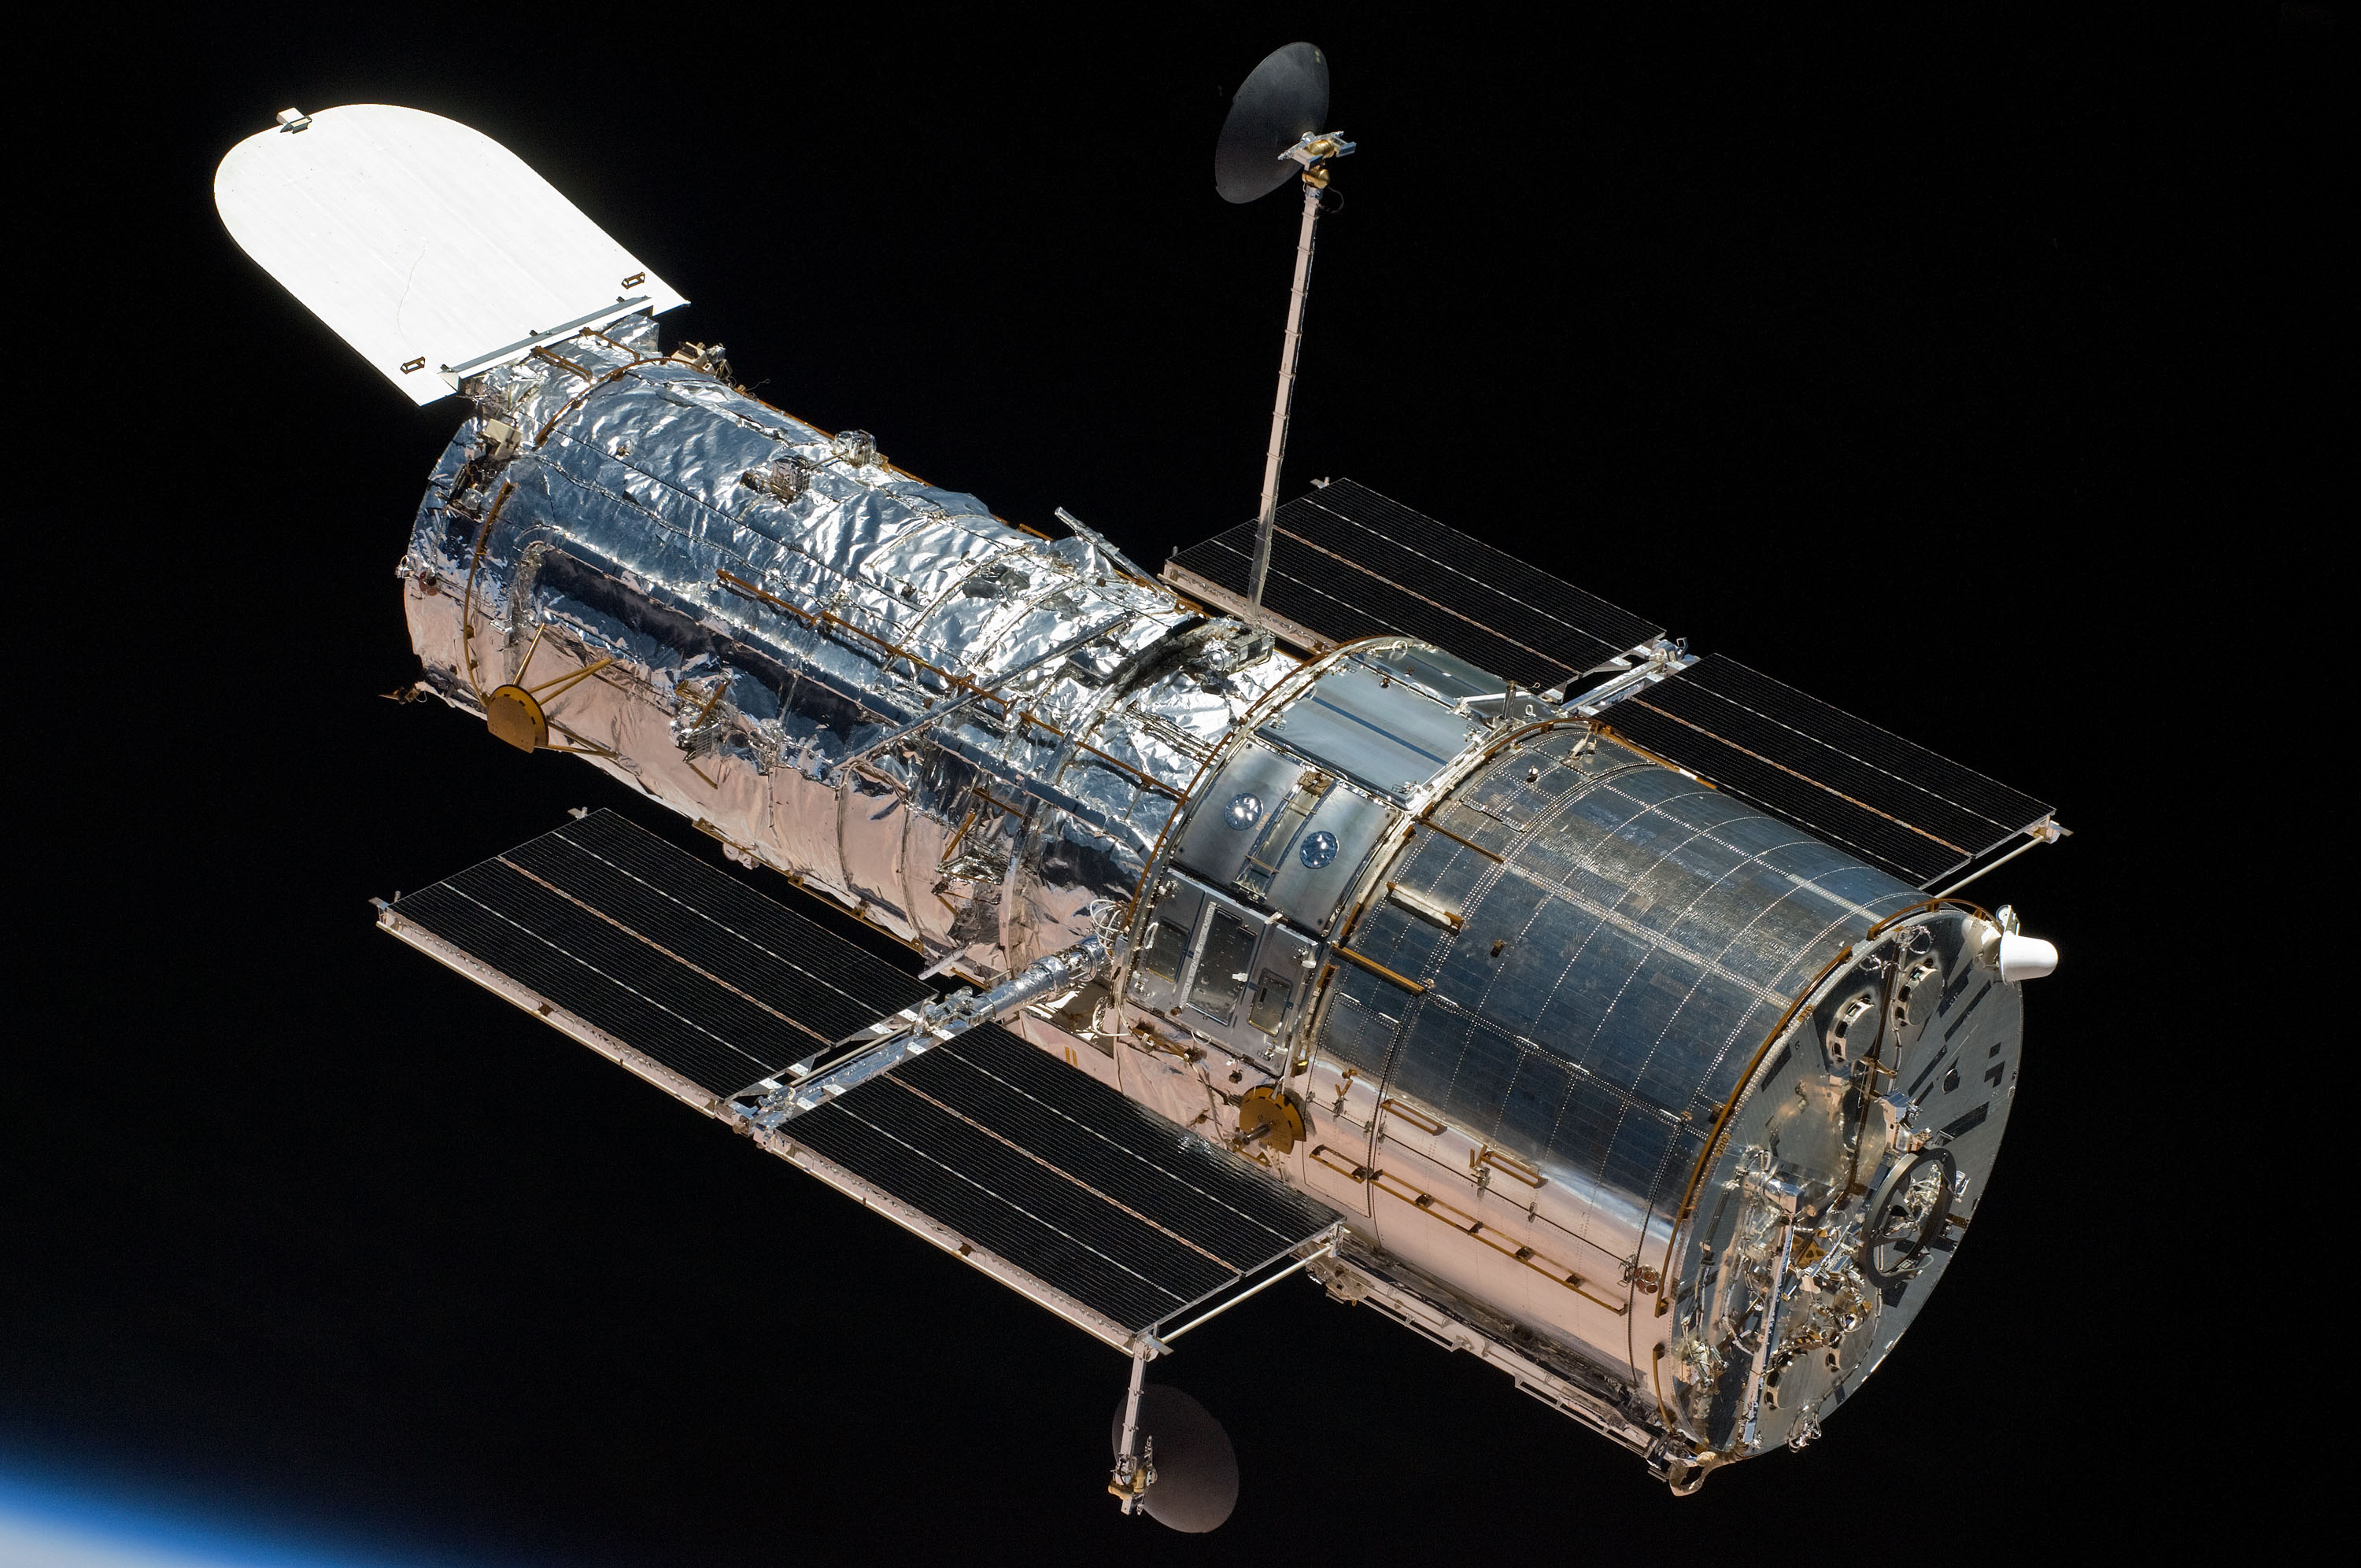 Fine image of Hubble in Space, NASA.